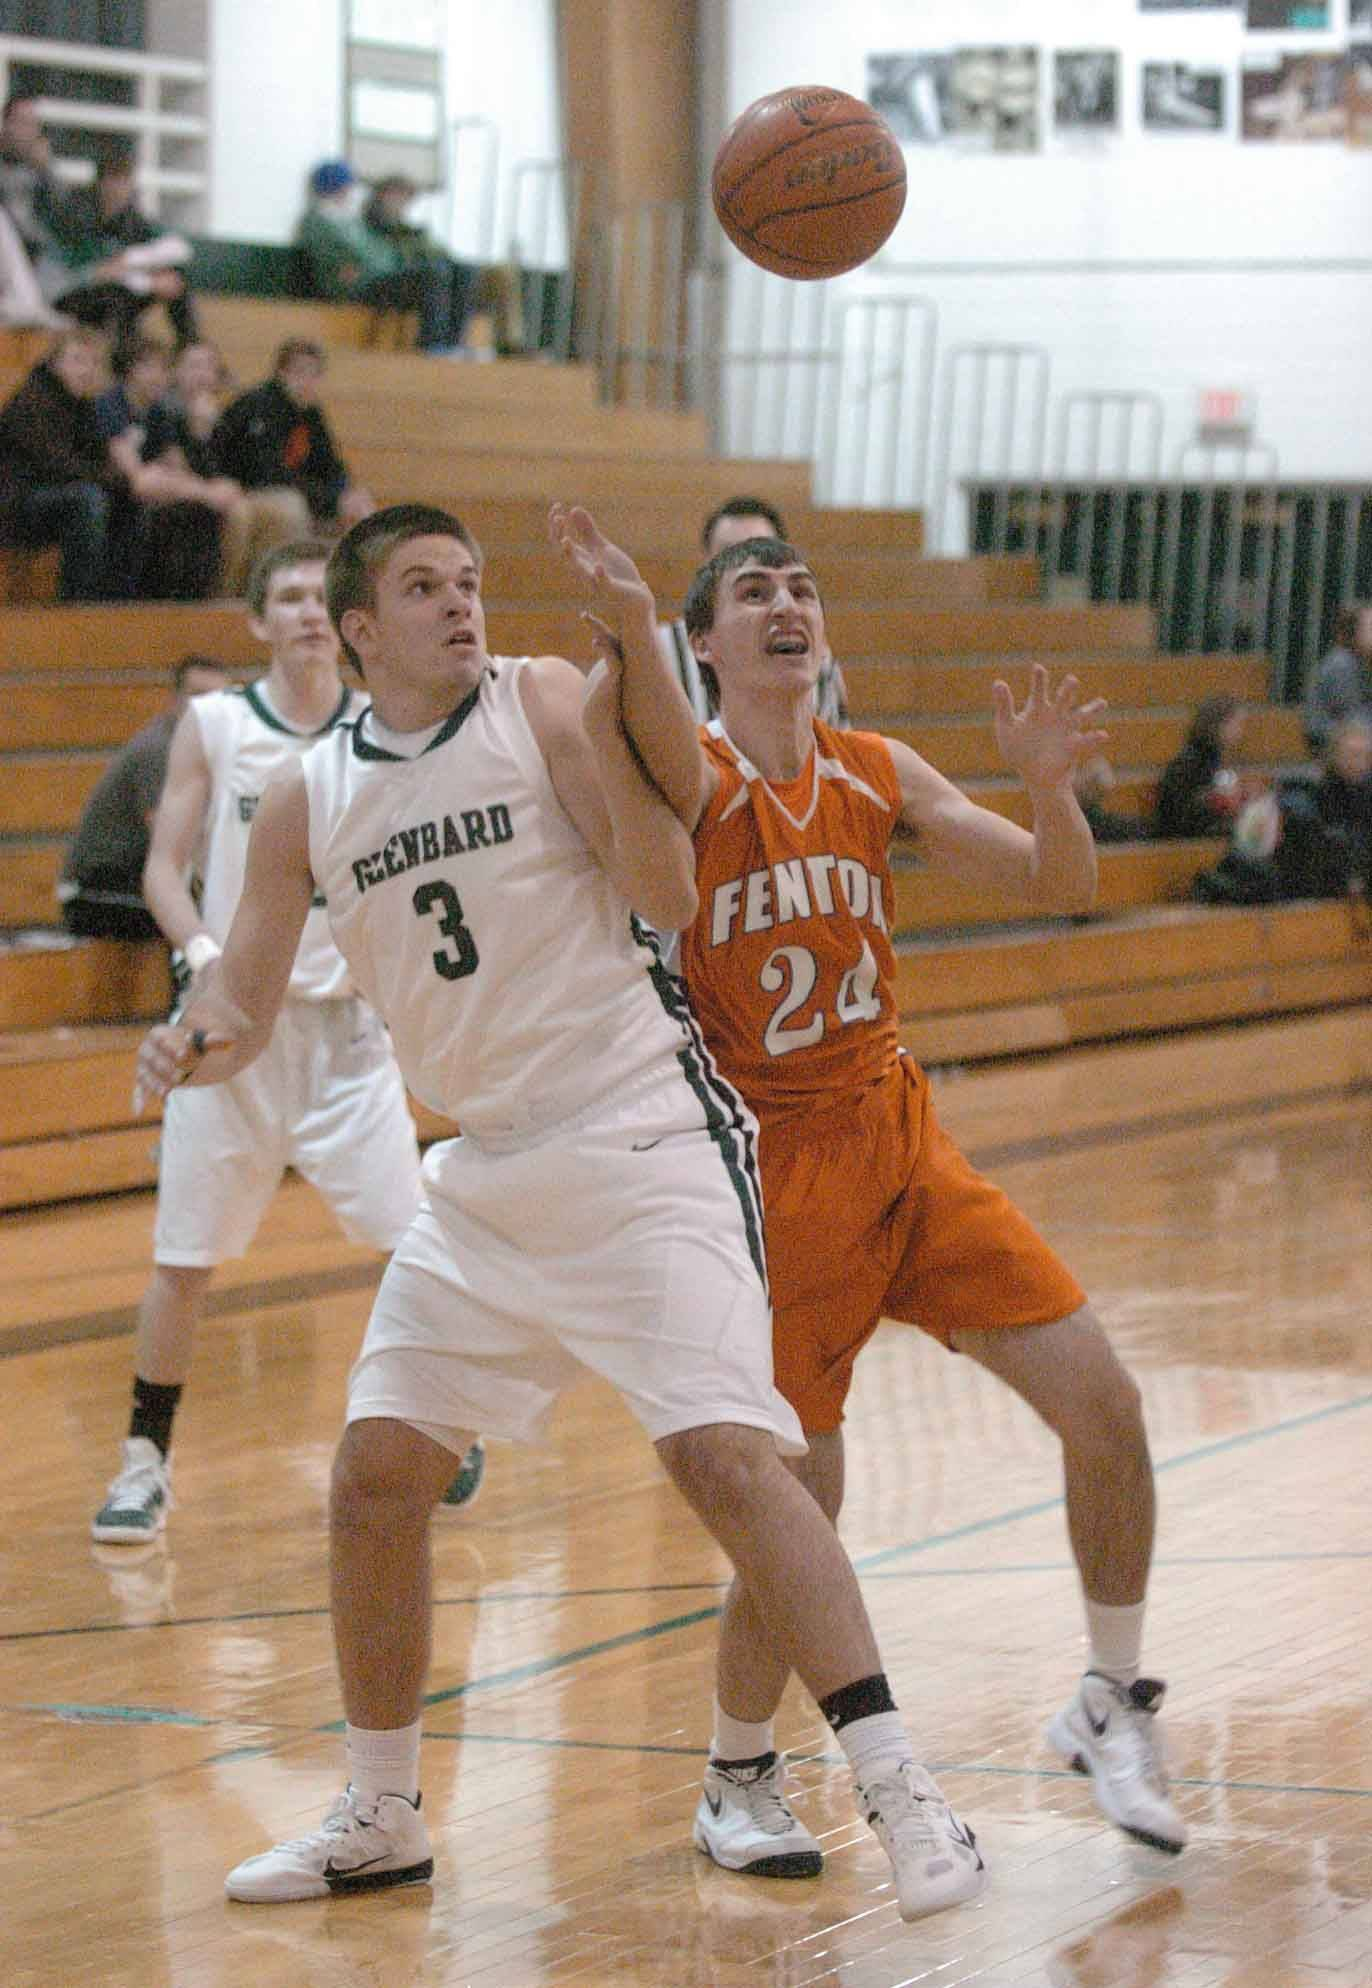 Evan Fischl,left, of Glenbard West and Jeremy Shimanek of Fenton during the Fenton at Glenbard West boys basketball game Tuesday.